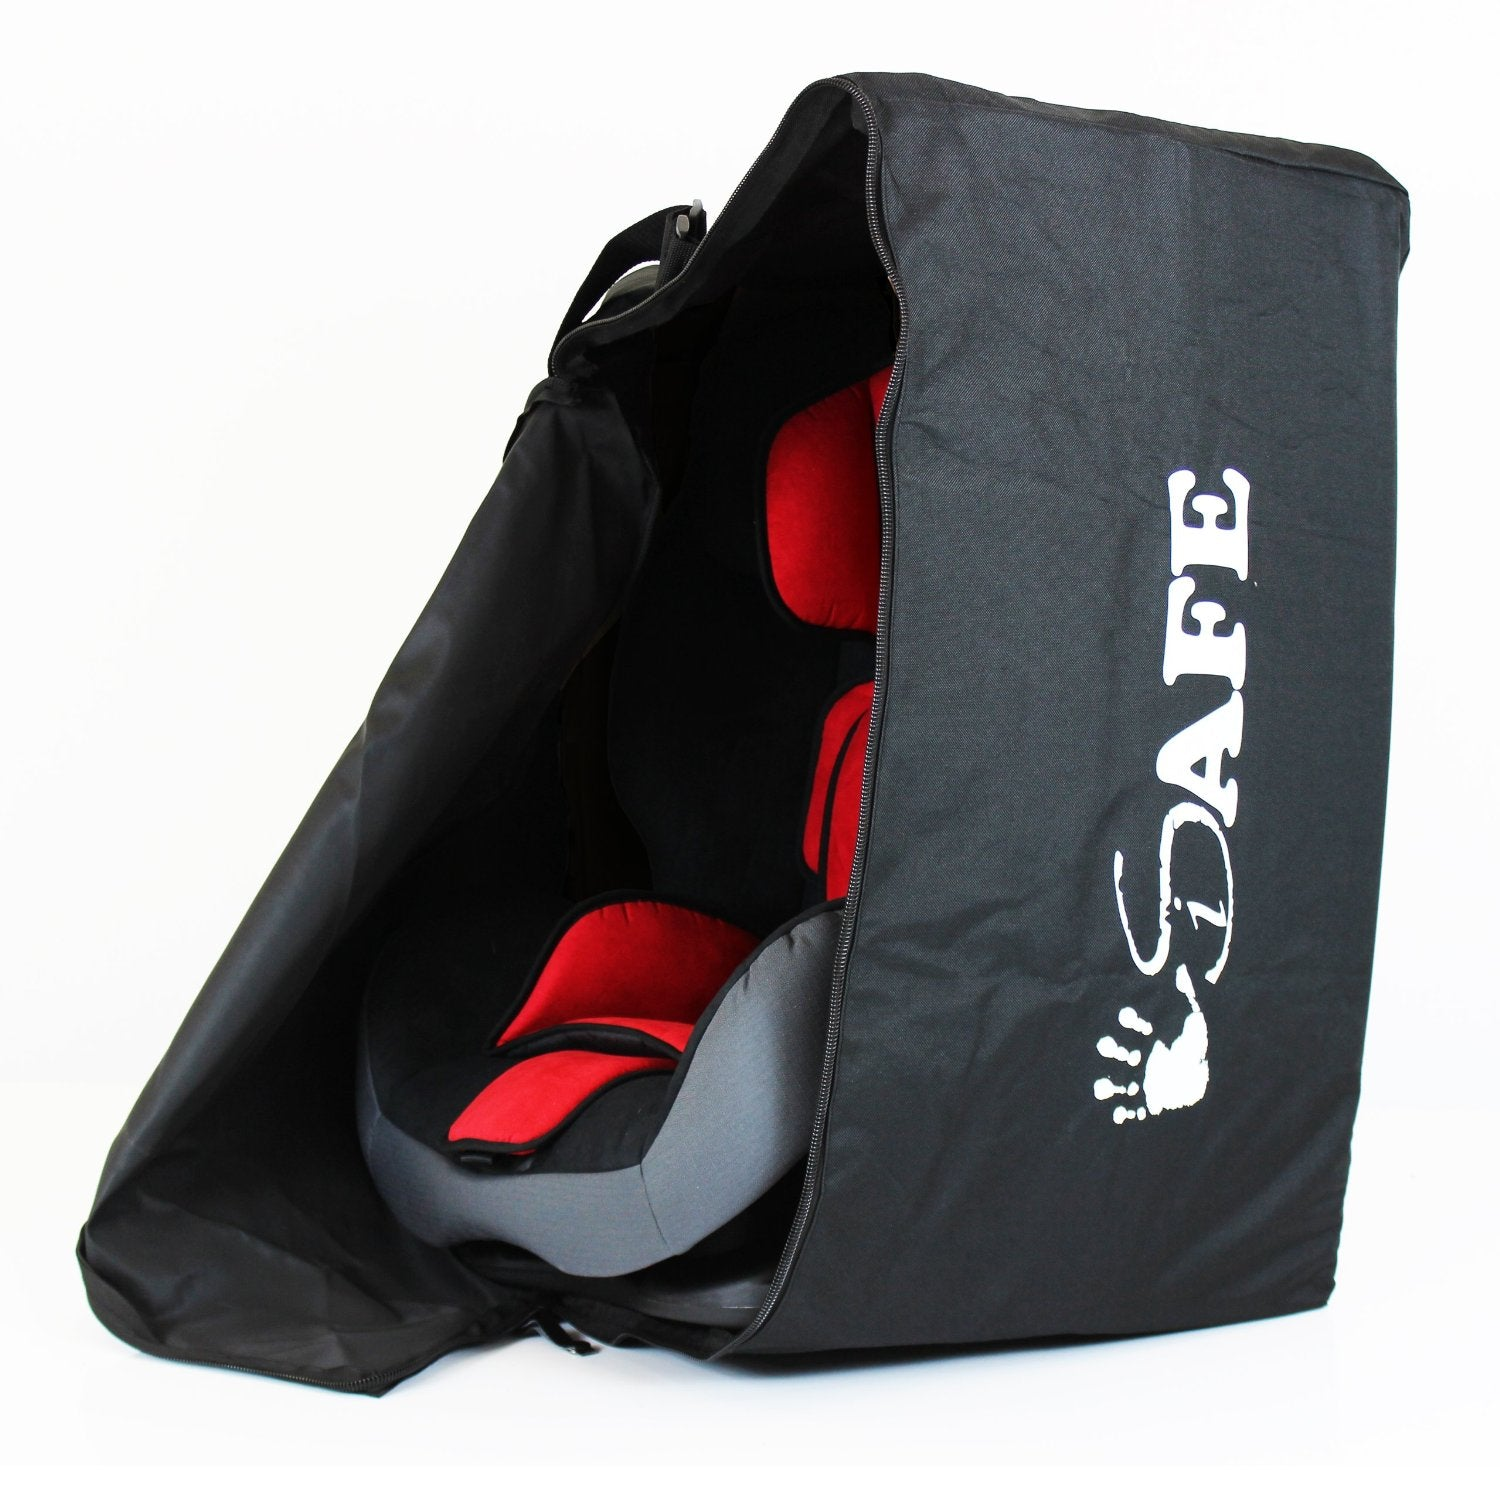 ISafe Car Seat Travel Bag For Britax Evolva 1 2 3 Carseat